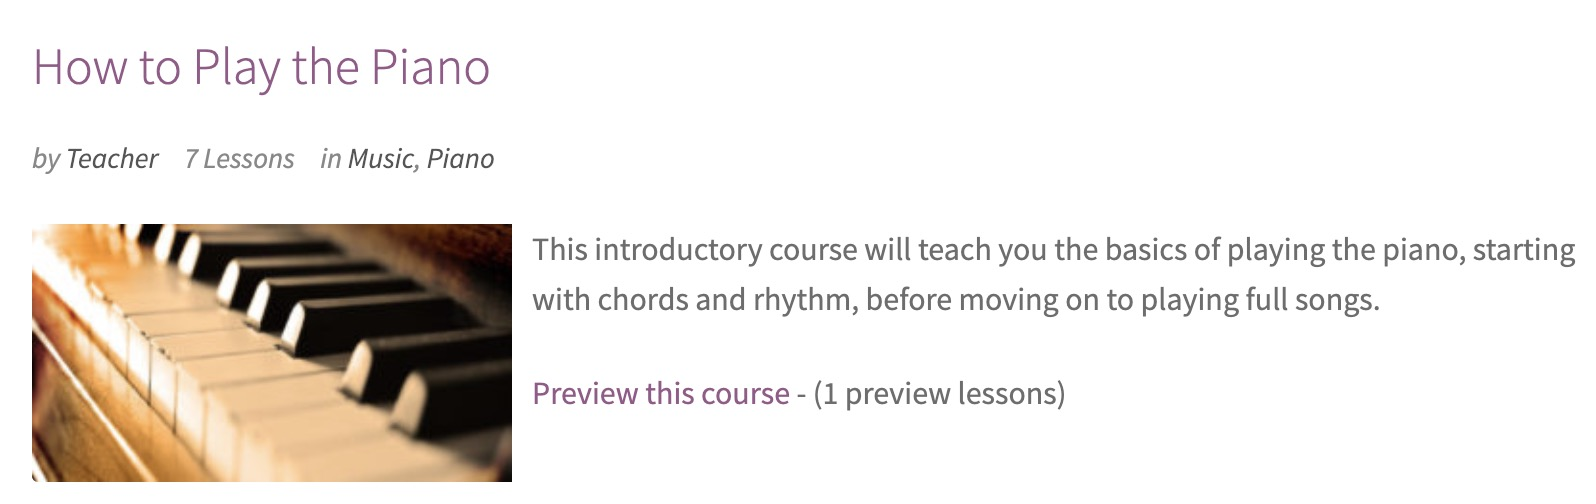 Preview lessons on course archive page